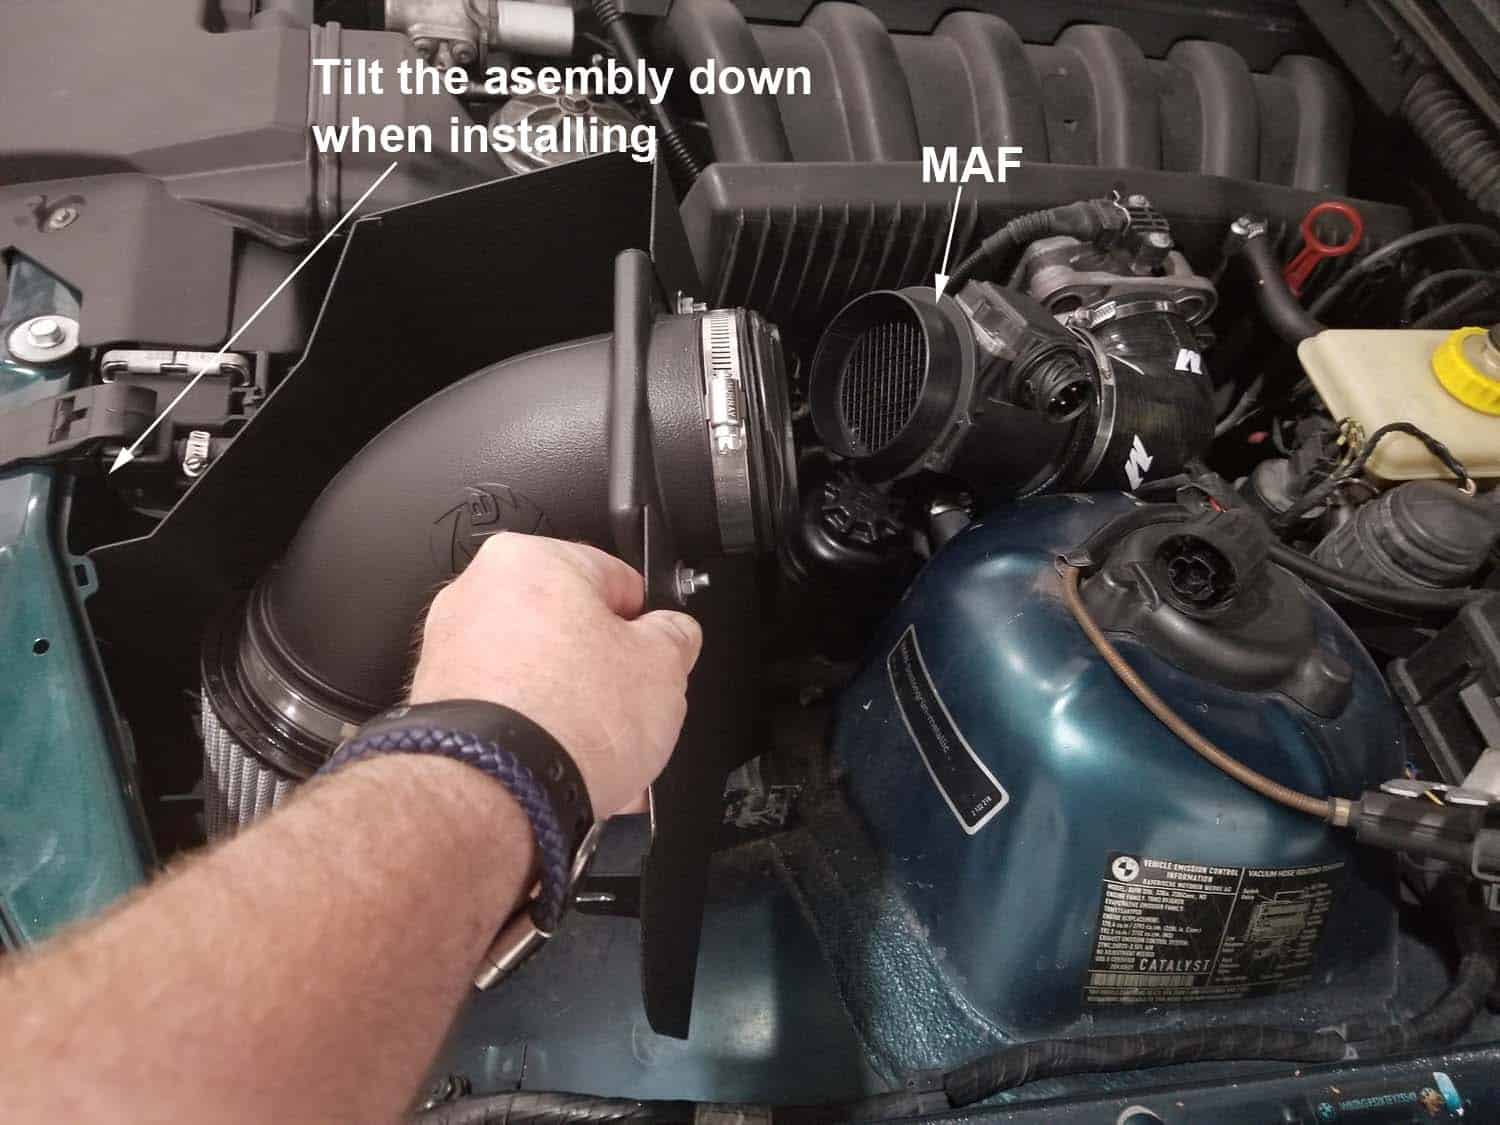 BMW E36 cold air intake - install the cold air intake into the vehicle